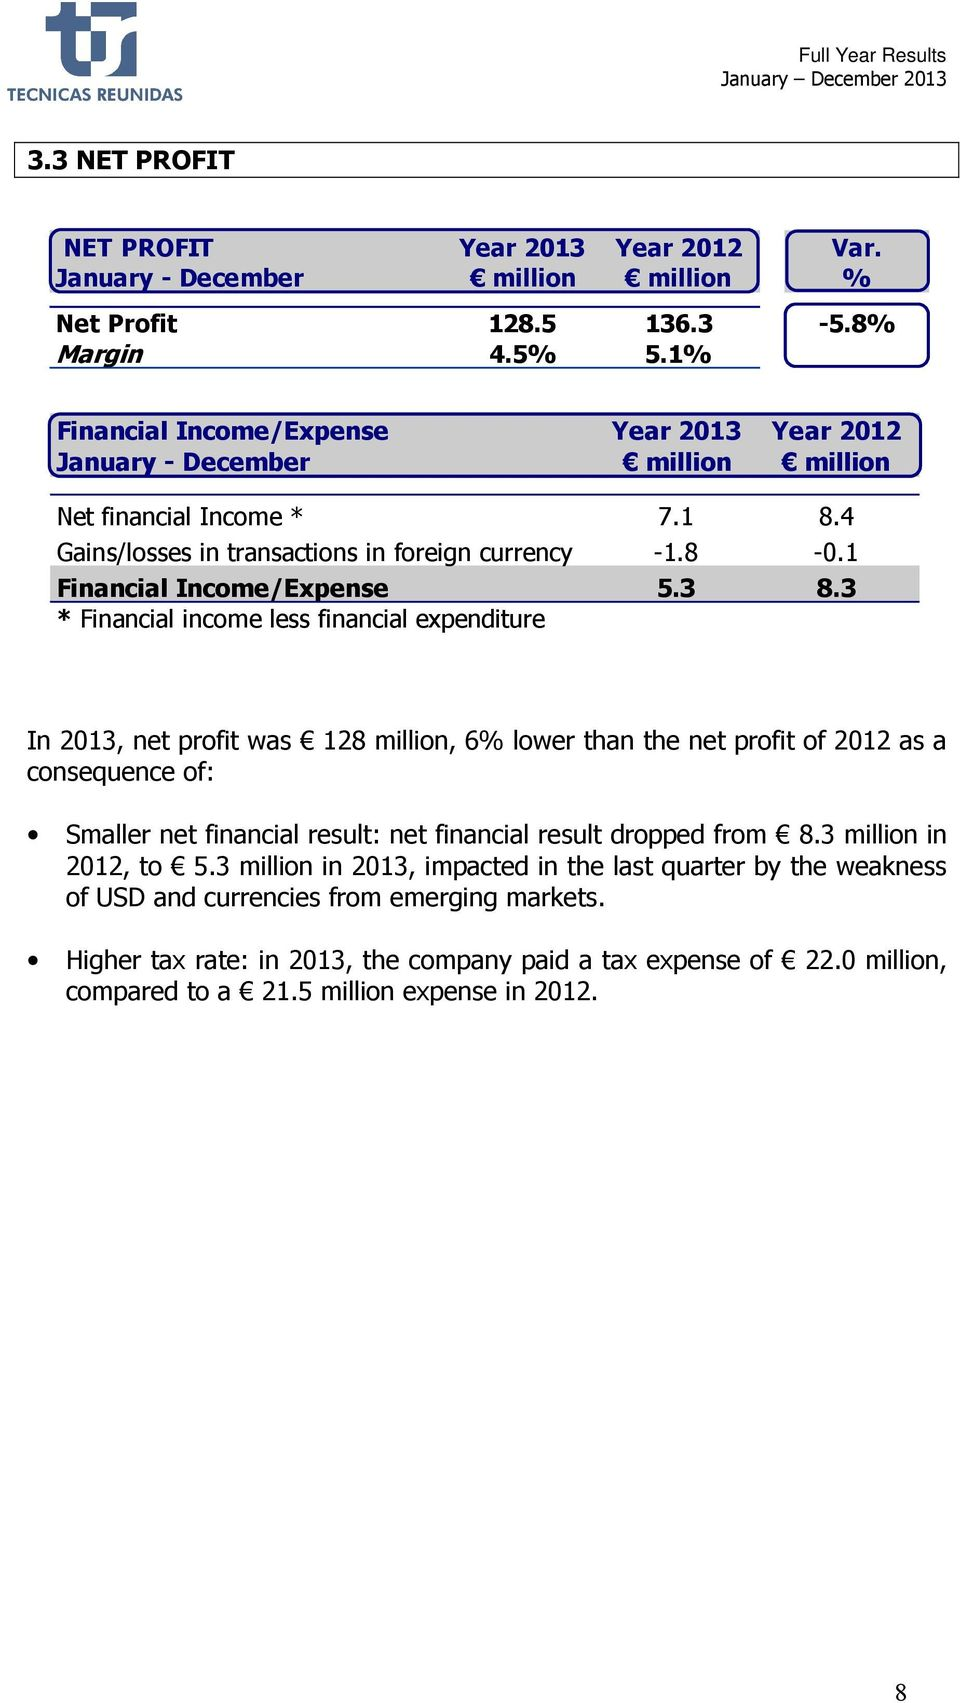 3 8.3 * Financial income less financial expenditure In 2013, net profit was 128 million, 6% lower than the net profit of 2012 as a consequence of: Smaller net financial result: net financial result